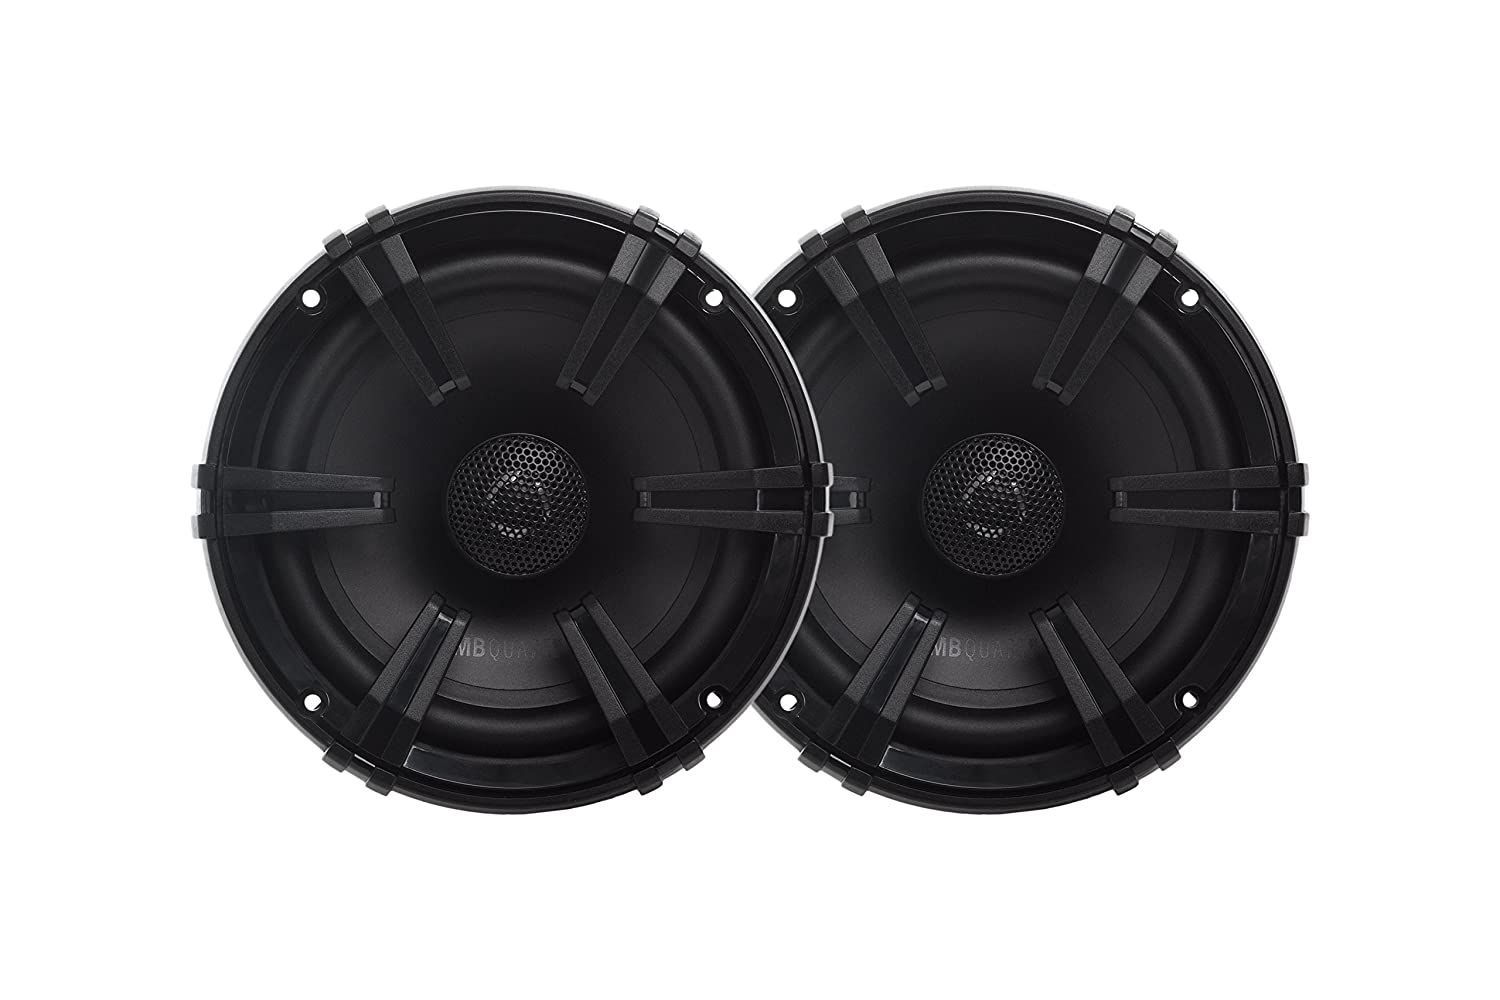 MB Quart DK1-116 Discus 2-Way Car Coaxial Speaker System with 0.75-Inch Aluminum Dome Tweeter on Silk Surround, 6.5-Inch, Set of 2 Maxxsonics USA Inc.